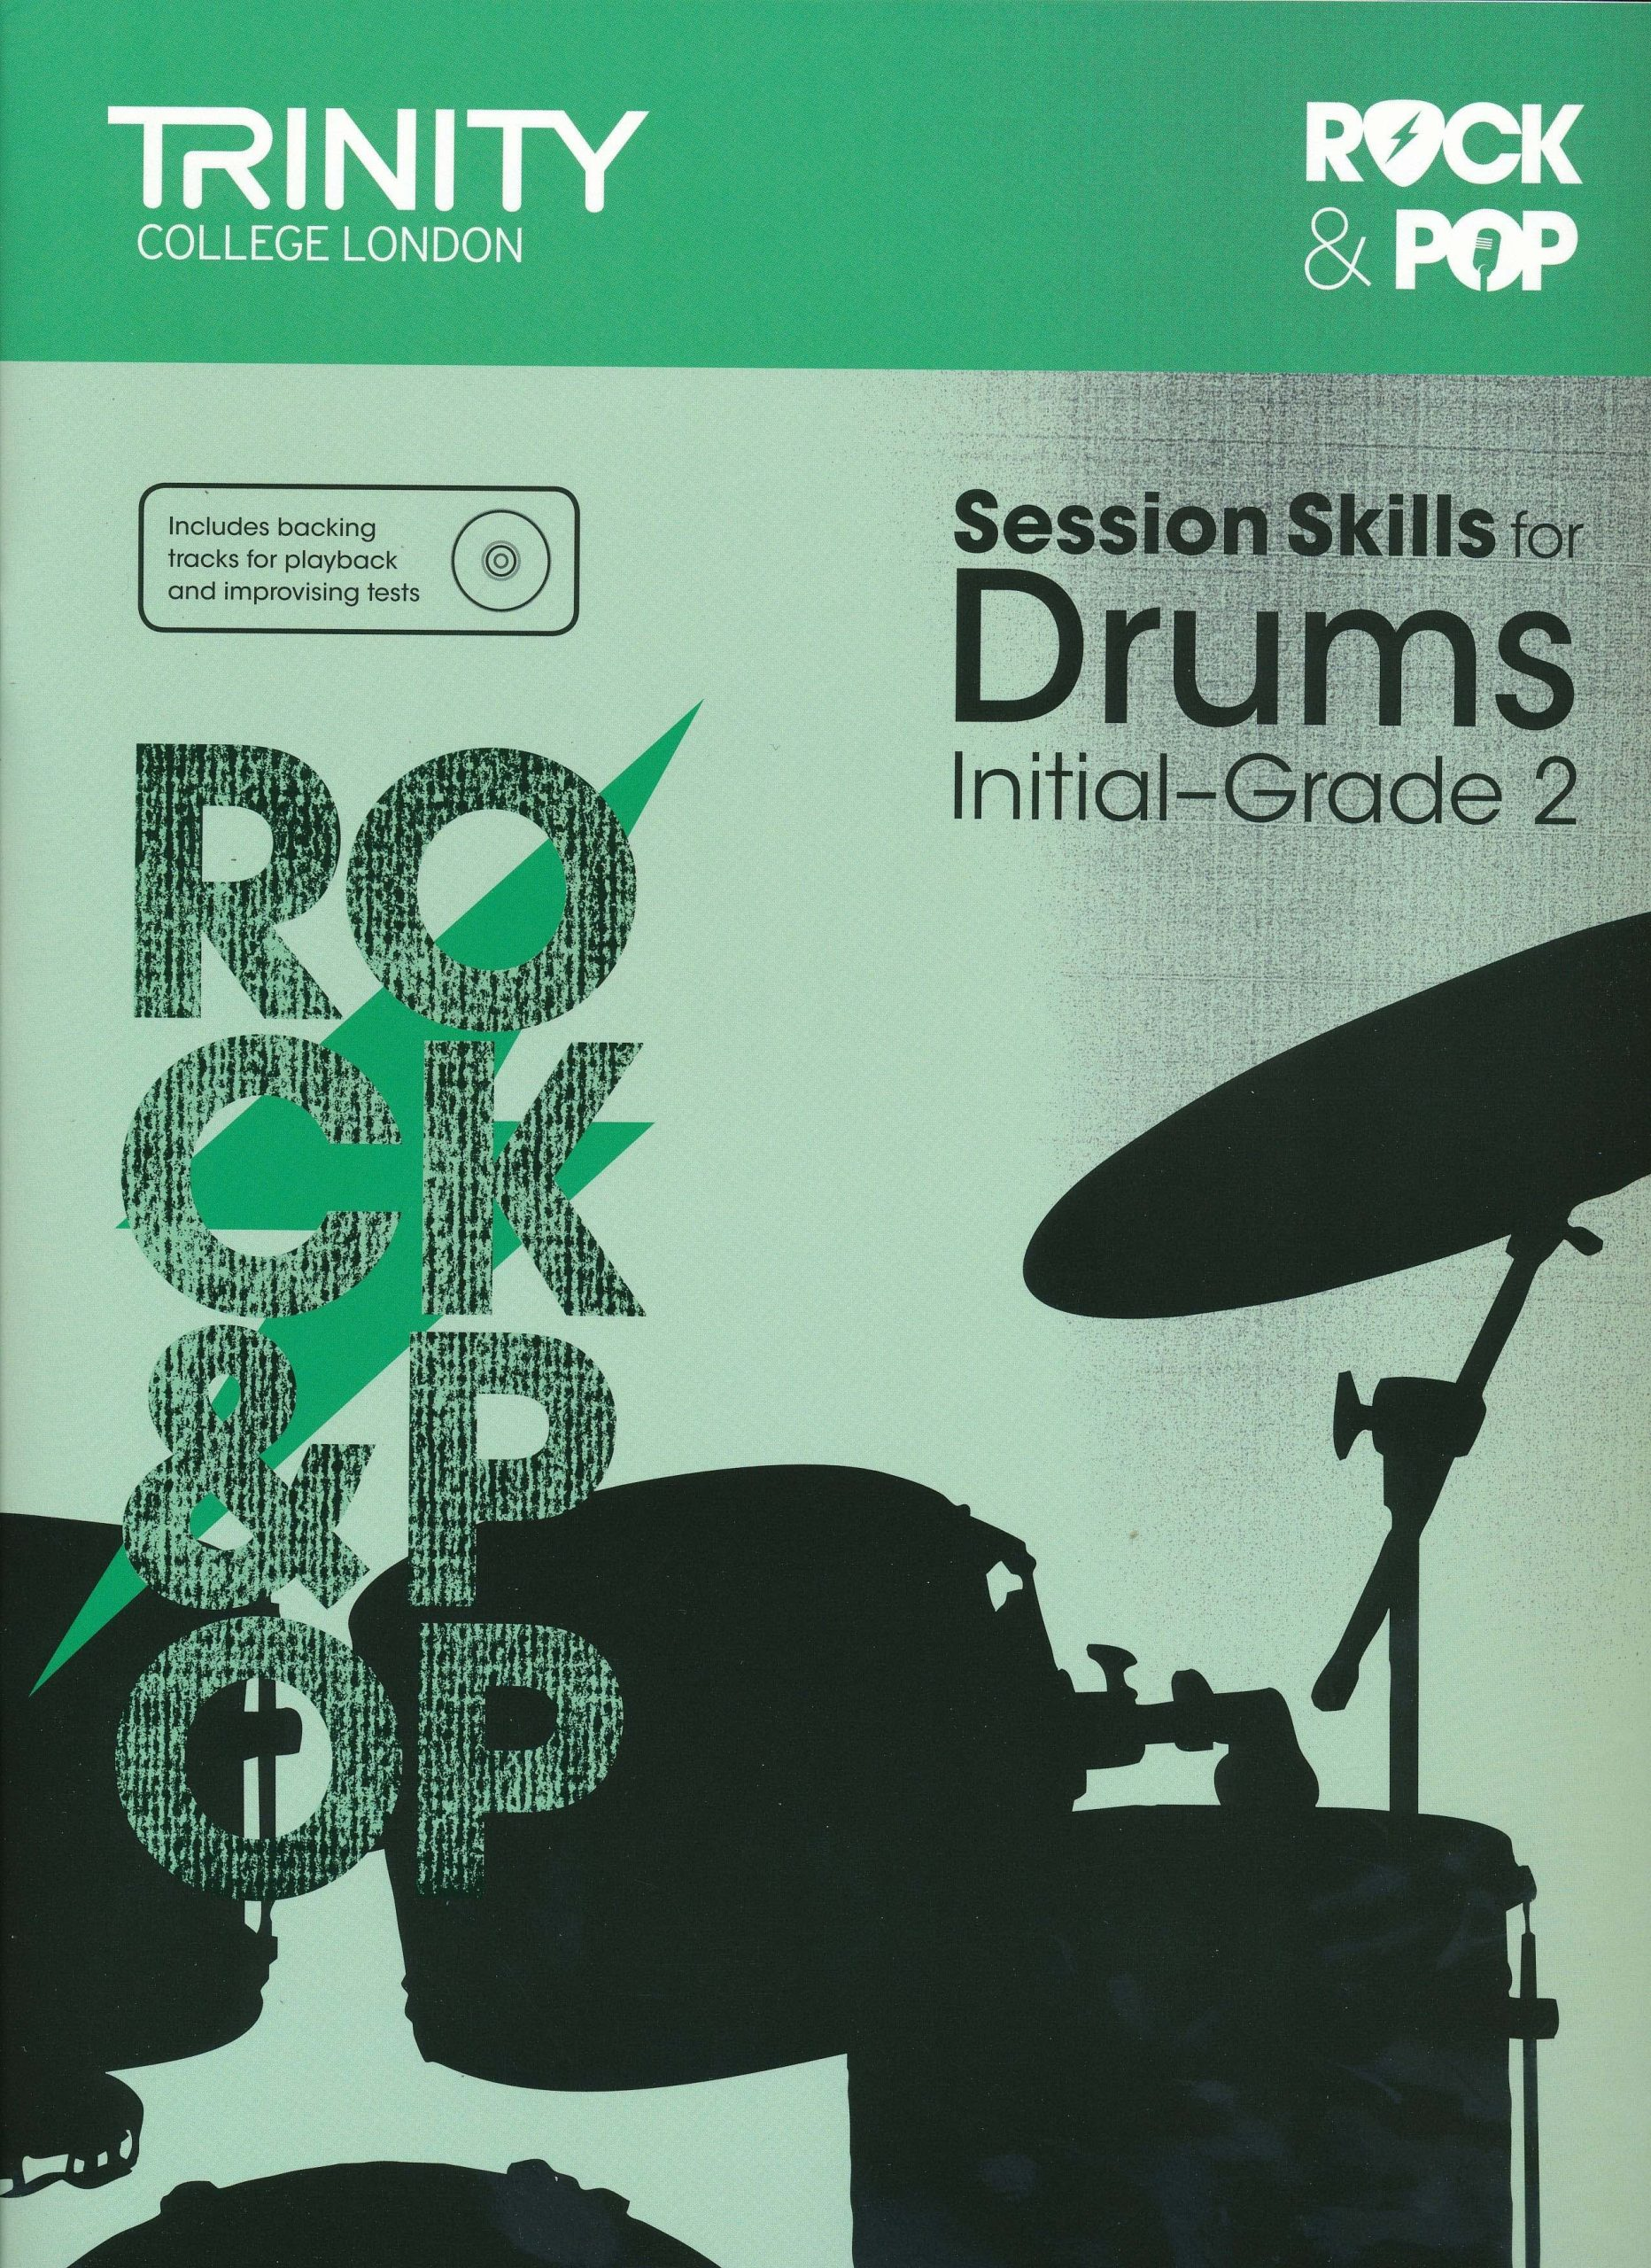 Rock and Pop Session Skills for Drums: Initial - Grade 2